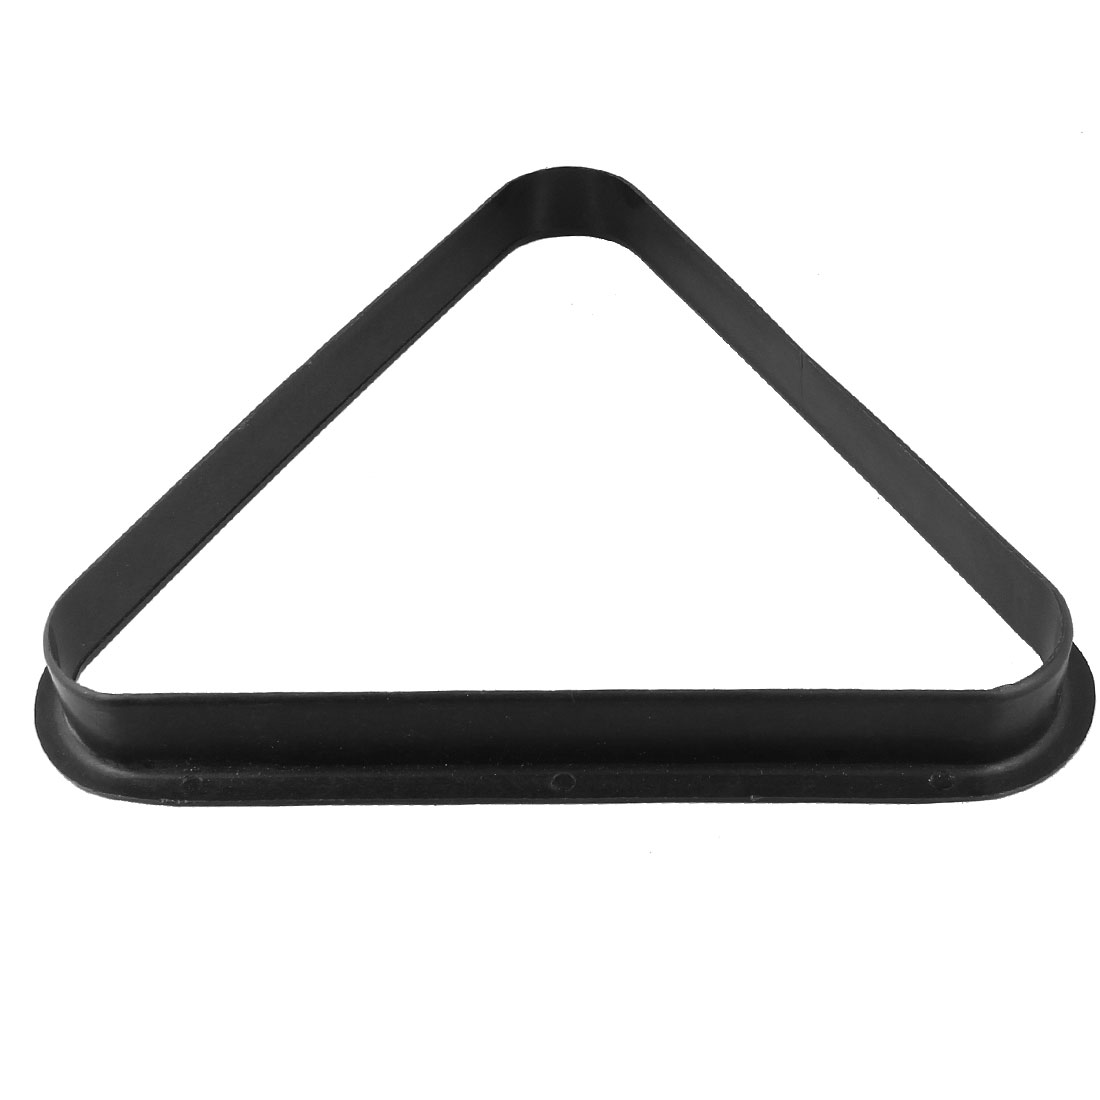 Black Plastic Triangle Billiard Games Pool Table 8 Balls Rack 30CM Long